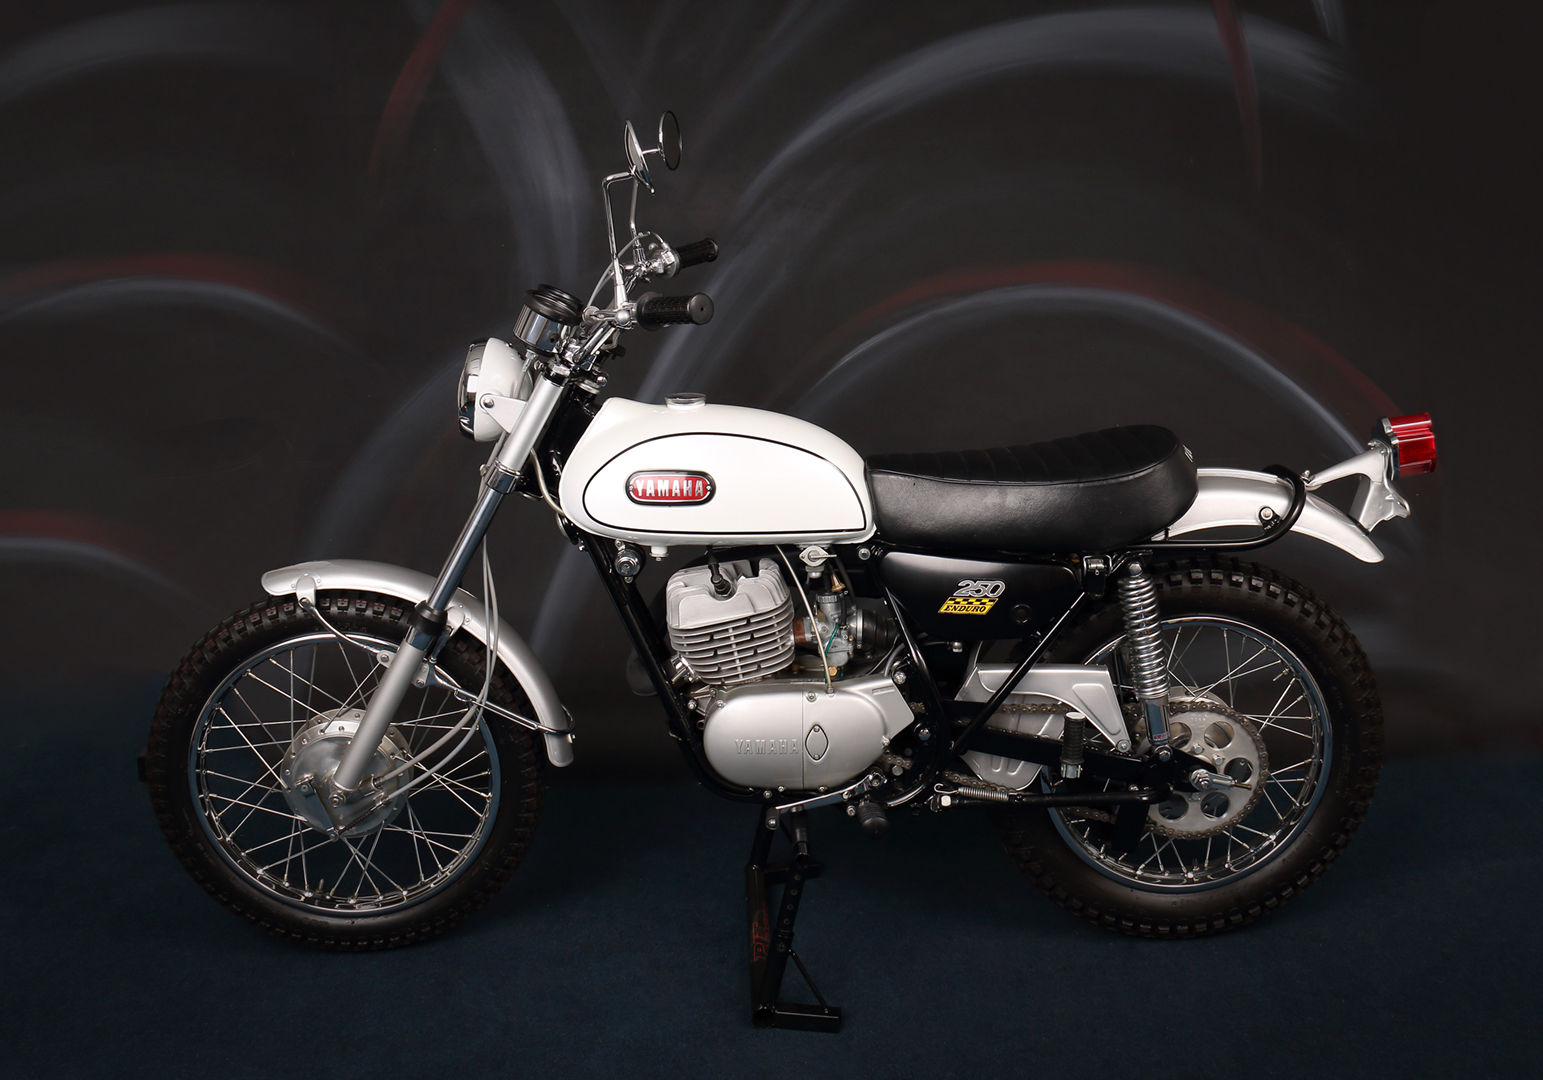 Restored yamaha dt1 250 1968 photographs at classic for Yamaha dt 250 for sale